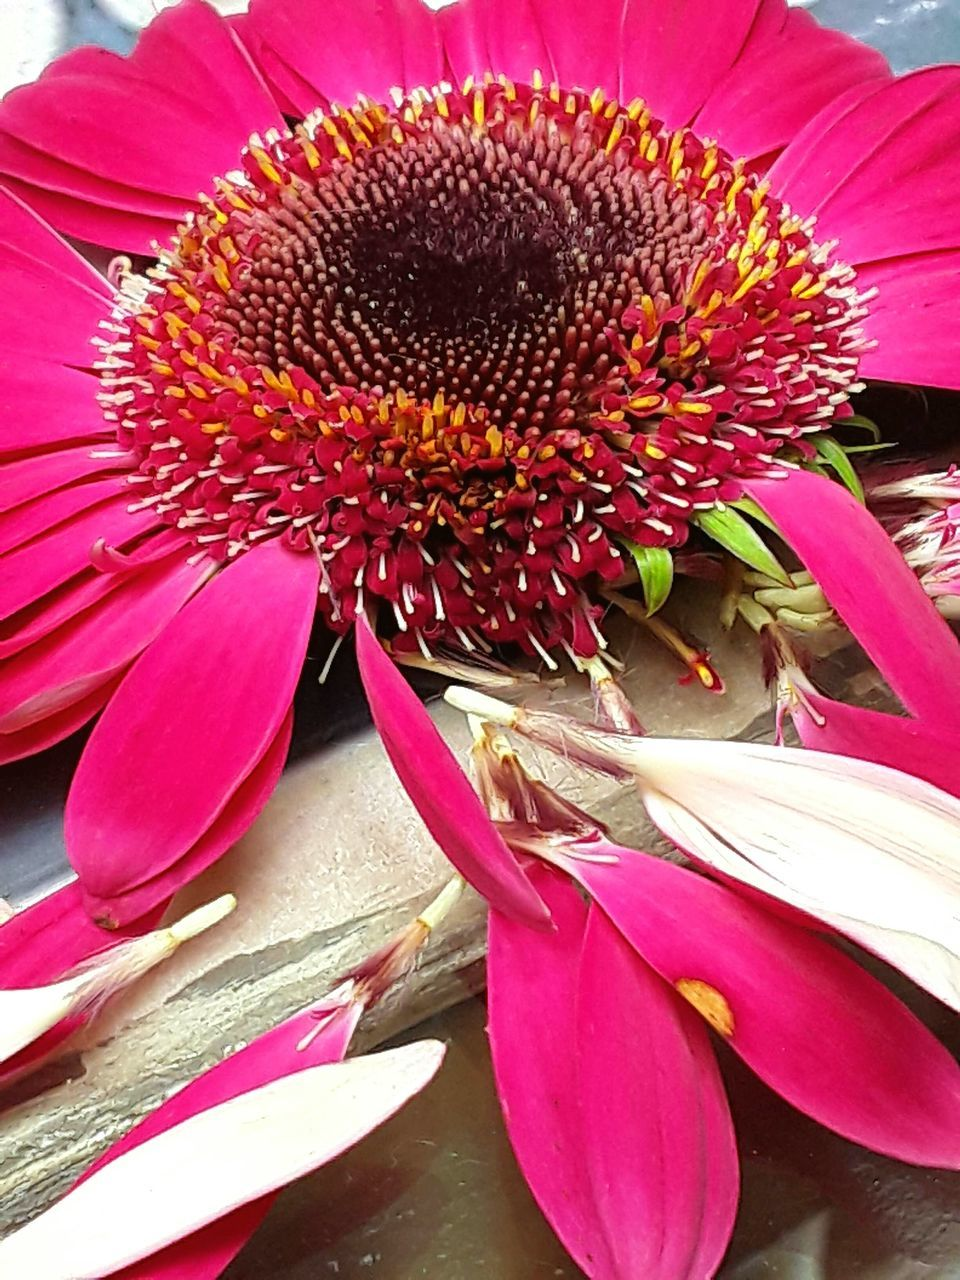 flower, petal, fragility, freshness, flower head, nature, beauty in nature, close-up, pollen, growth, pink color, no people, day, purple, blooming, outdoors, red, eastern purple coneflower